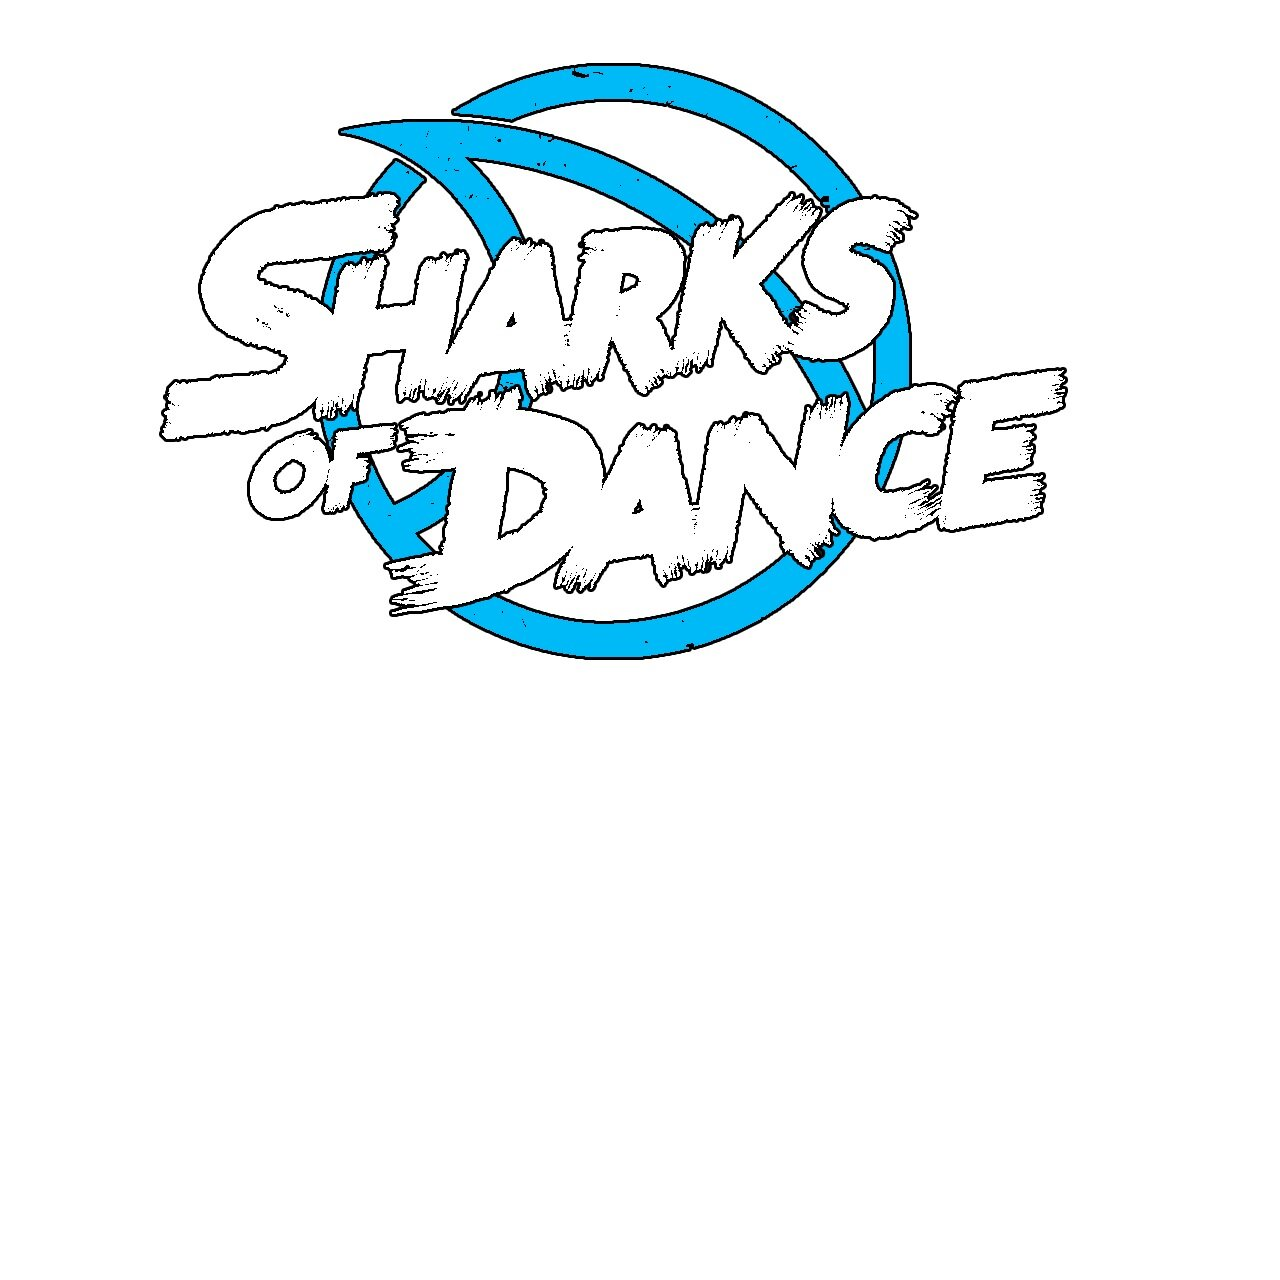 Sharks of Dance